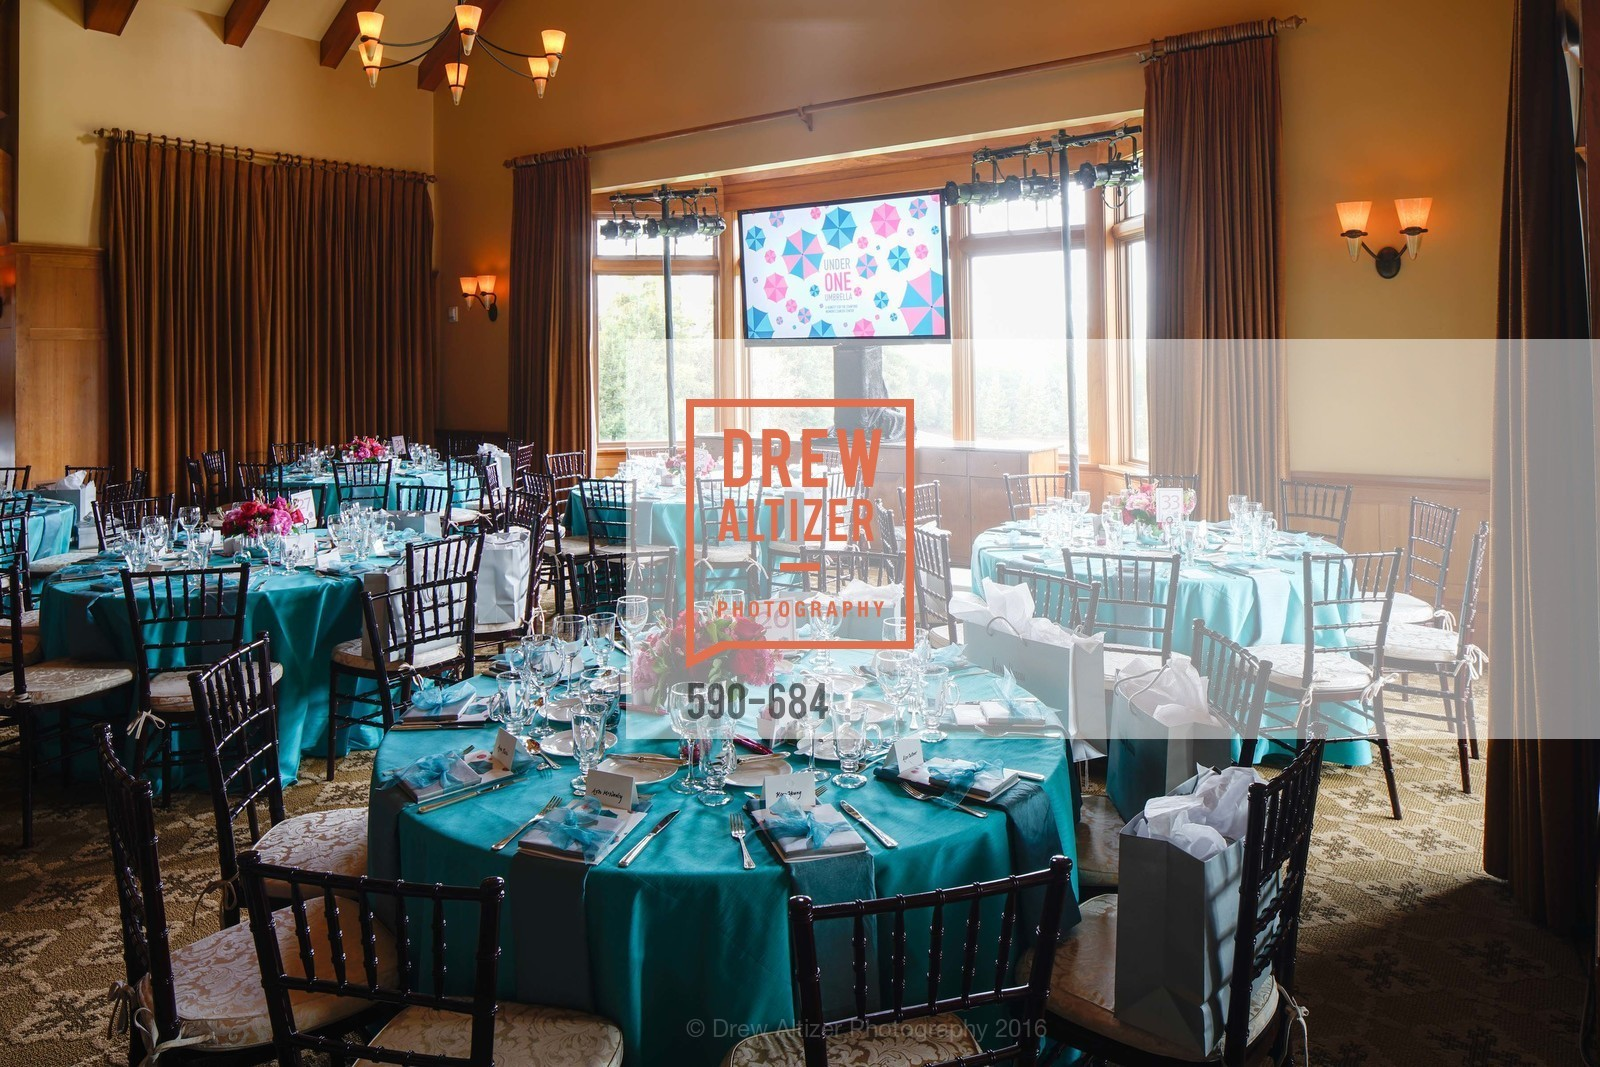 Atmosphere, Under One Umbrella, Sharon Heights Golf and Country Club, January 13th, 2016,Drew Altizer, Drew Altizer Photography, full-service event agency, private events, San Francisco photographer, photographer California